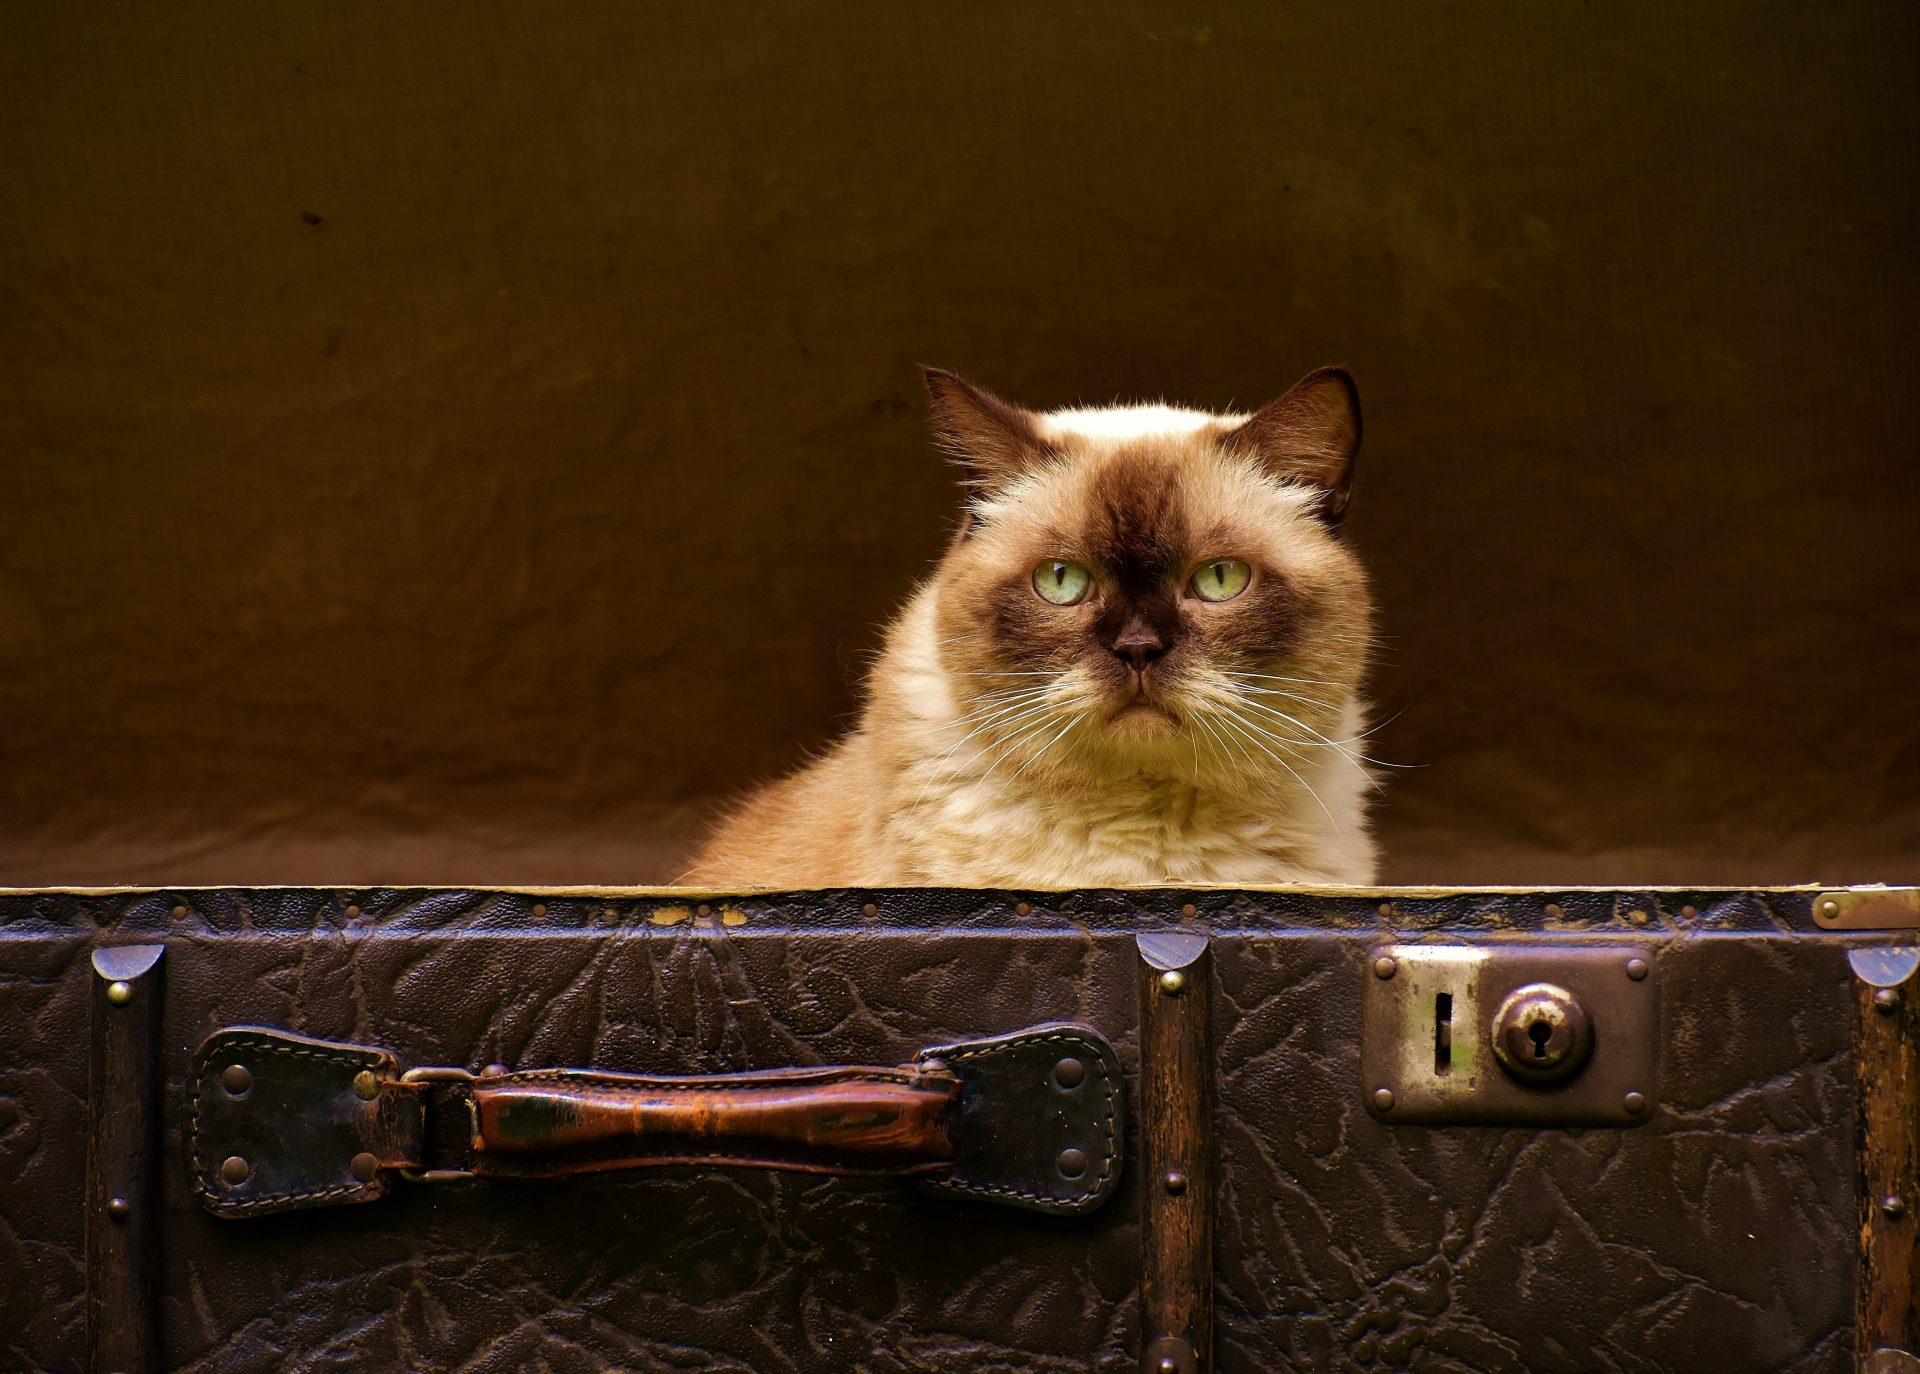 cat and luggage